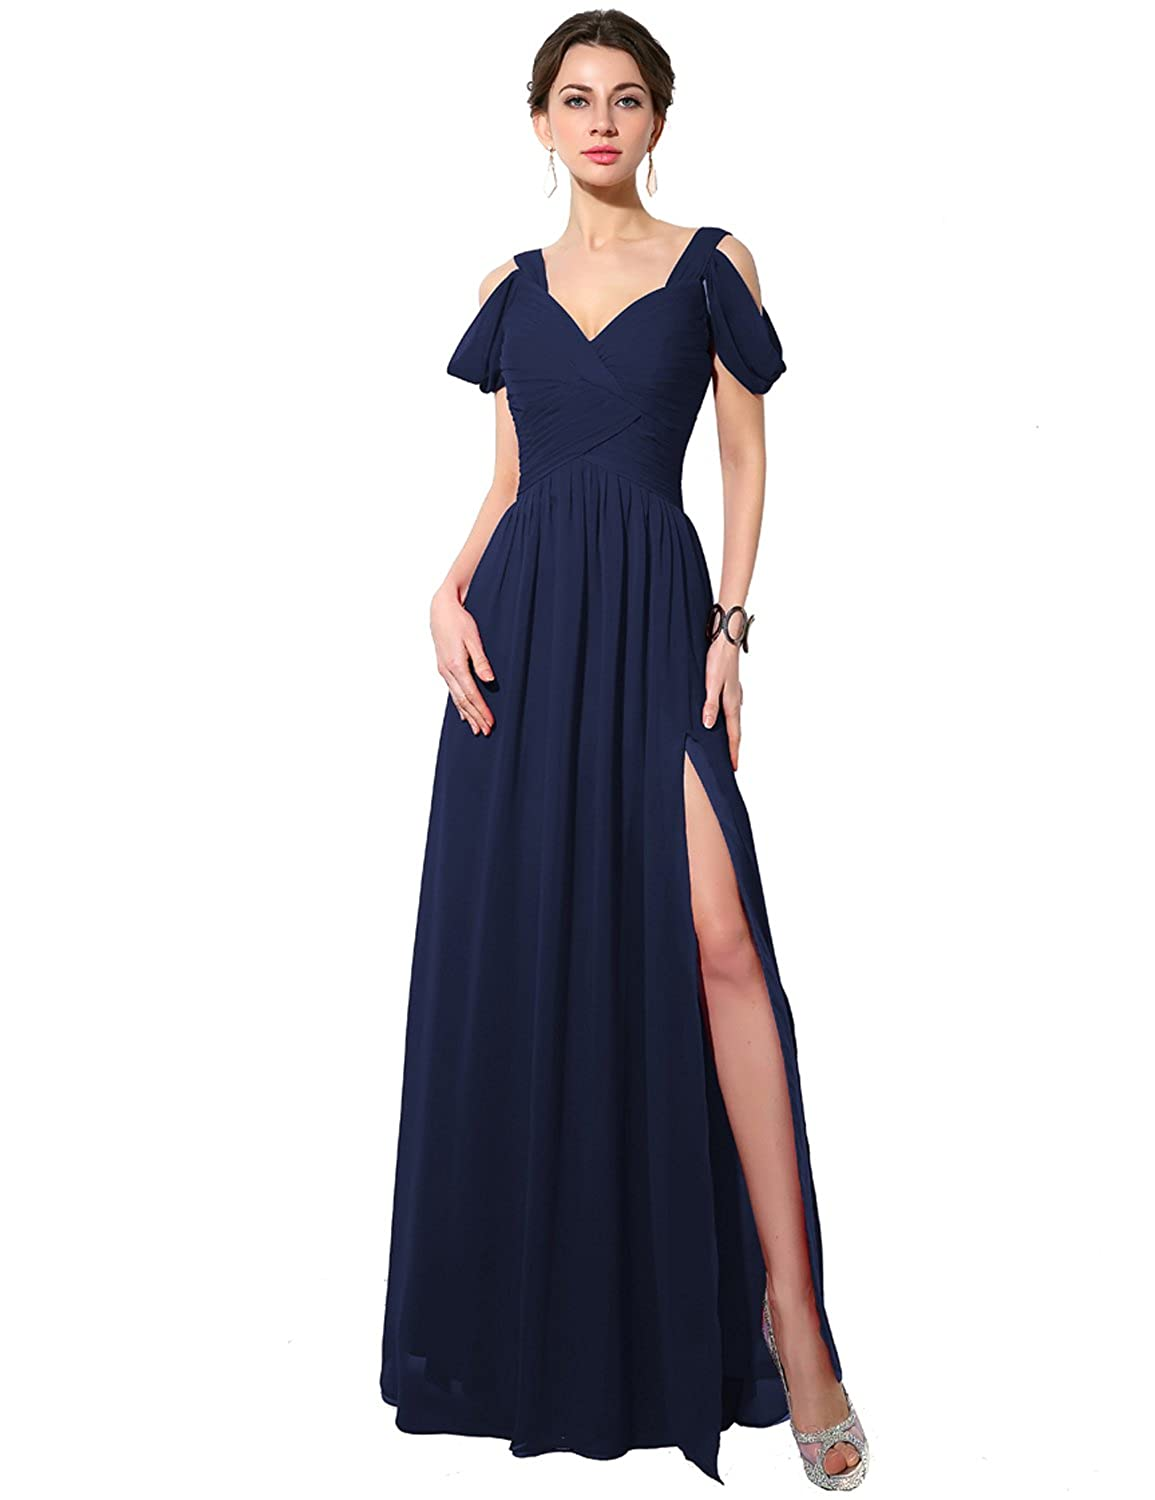 186navy bluee Sarahbridal Women's Mermaid Evening Ball Dress 2019 Formal Long Prom Gowns